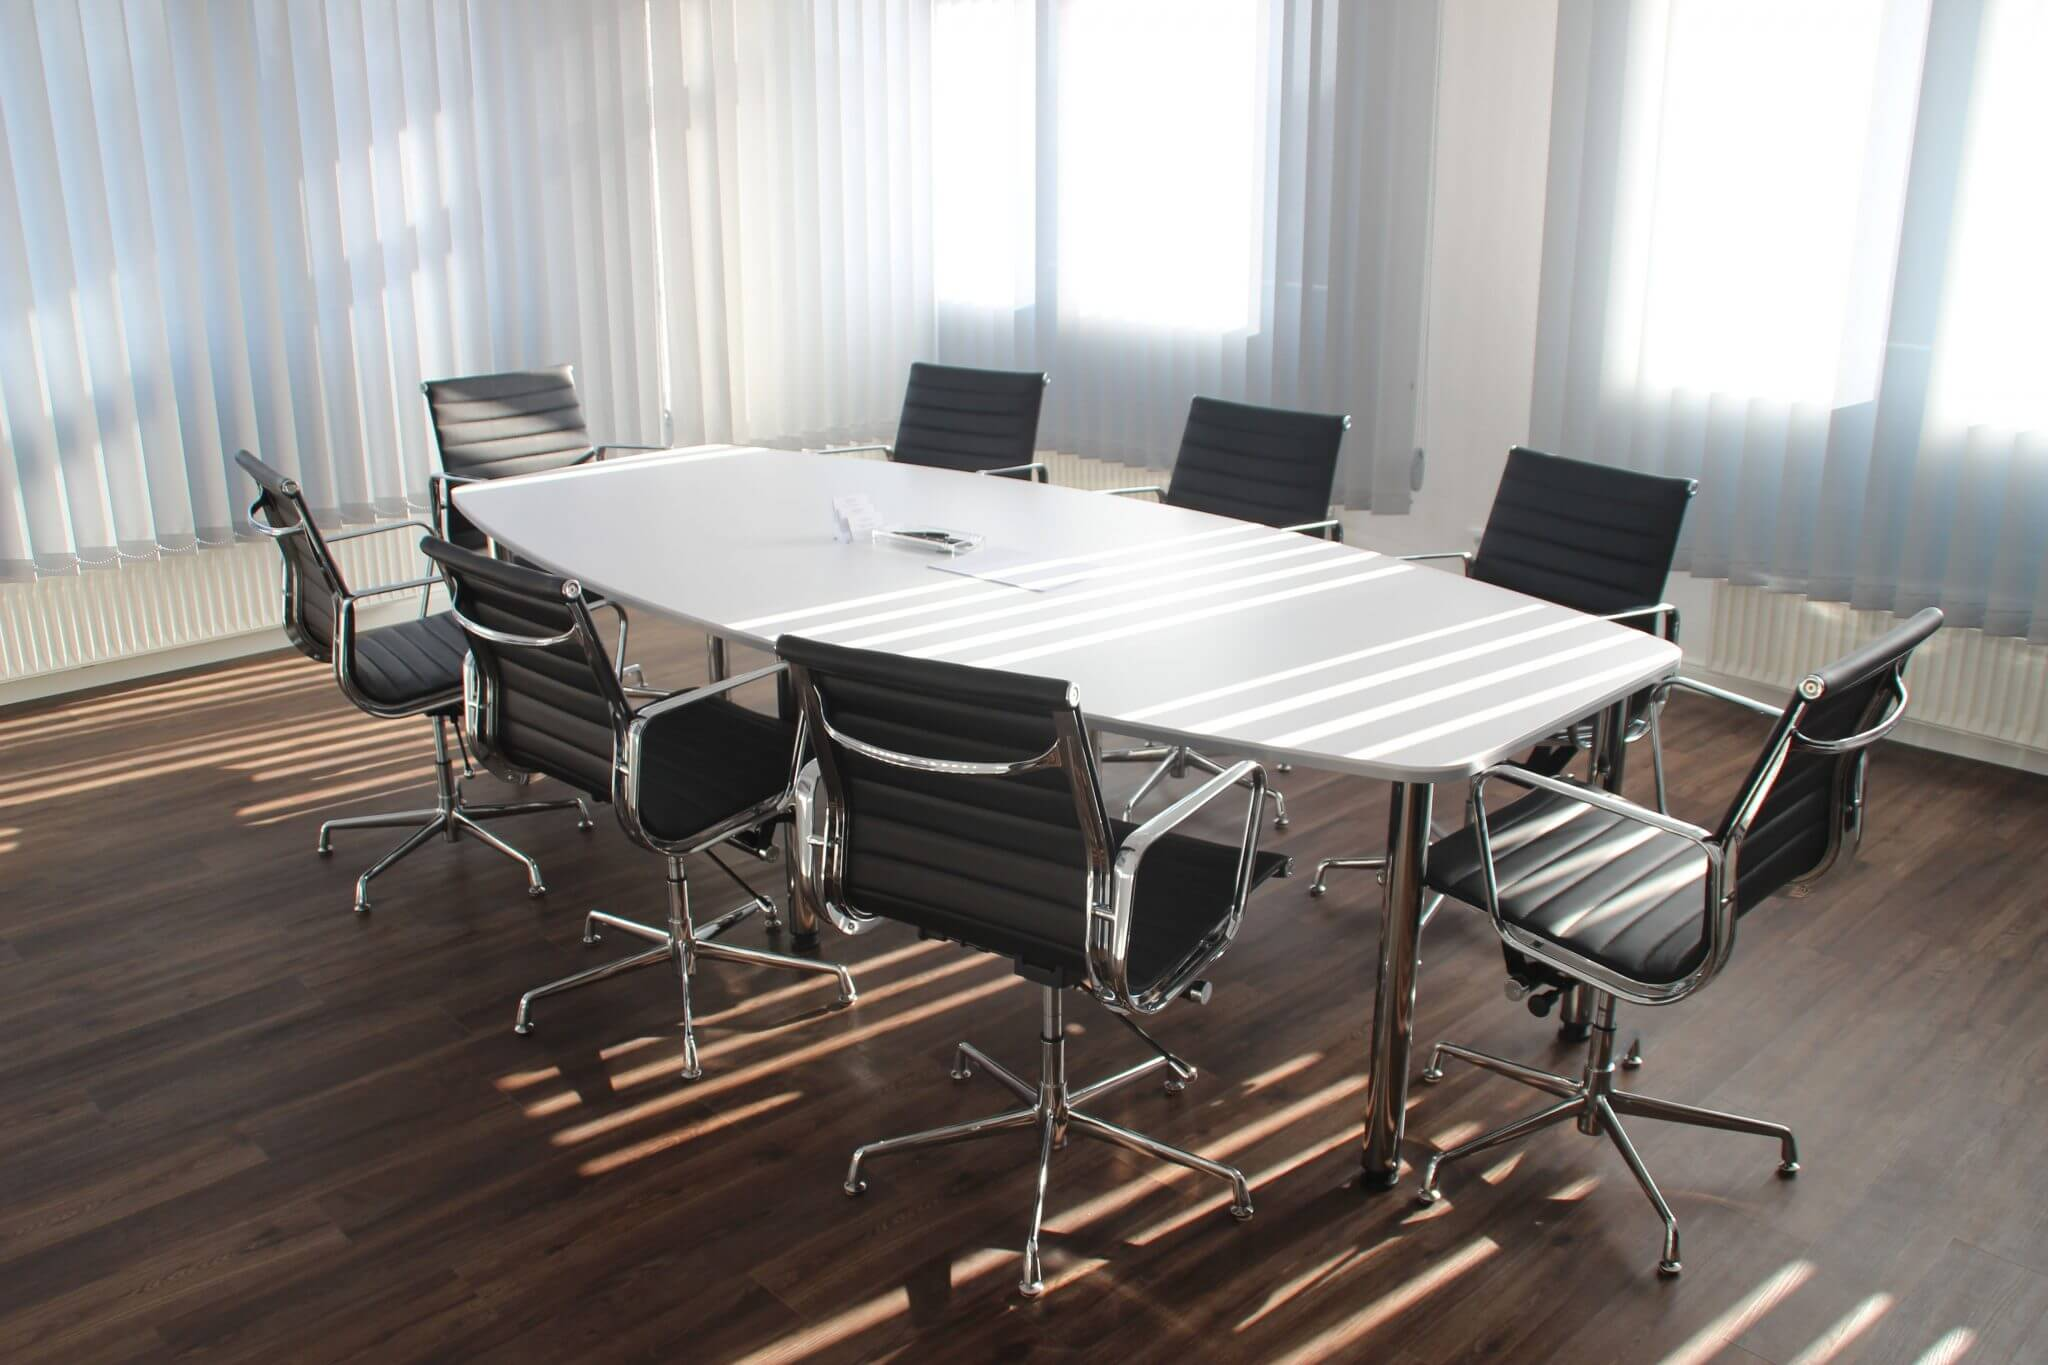 Empty office chairs around an empty conference table.